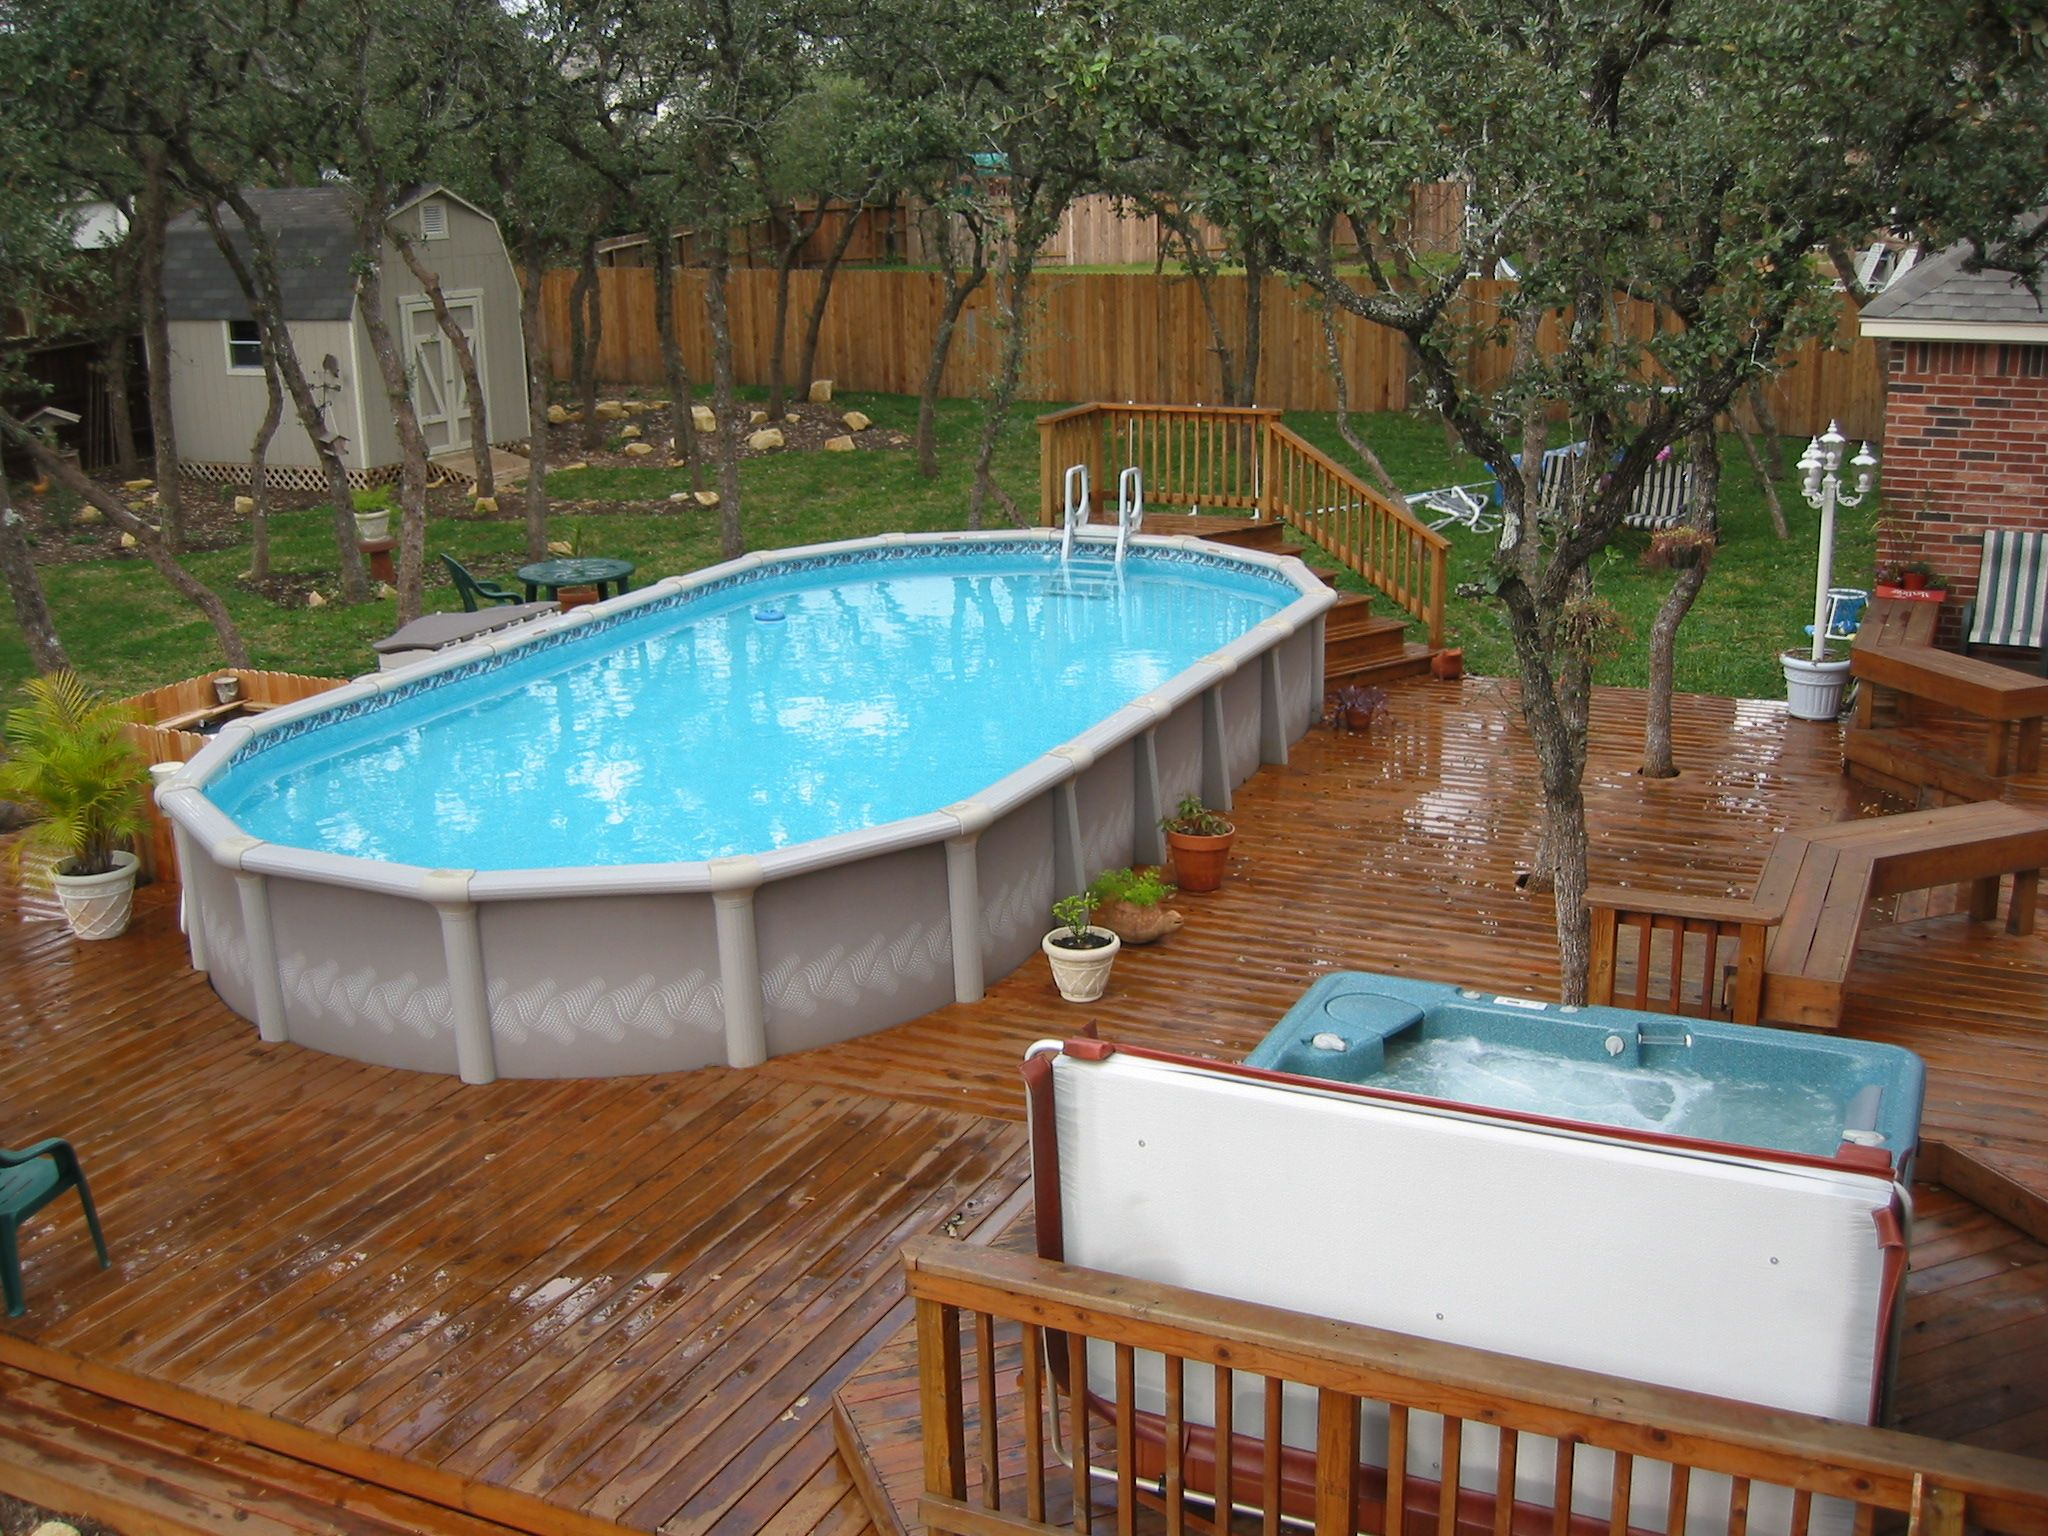 above ground pools | ... of above ground pools as 'toy' pools, to be avoided at all costs